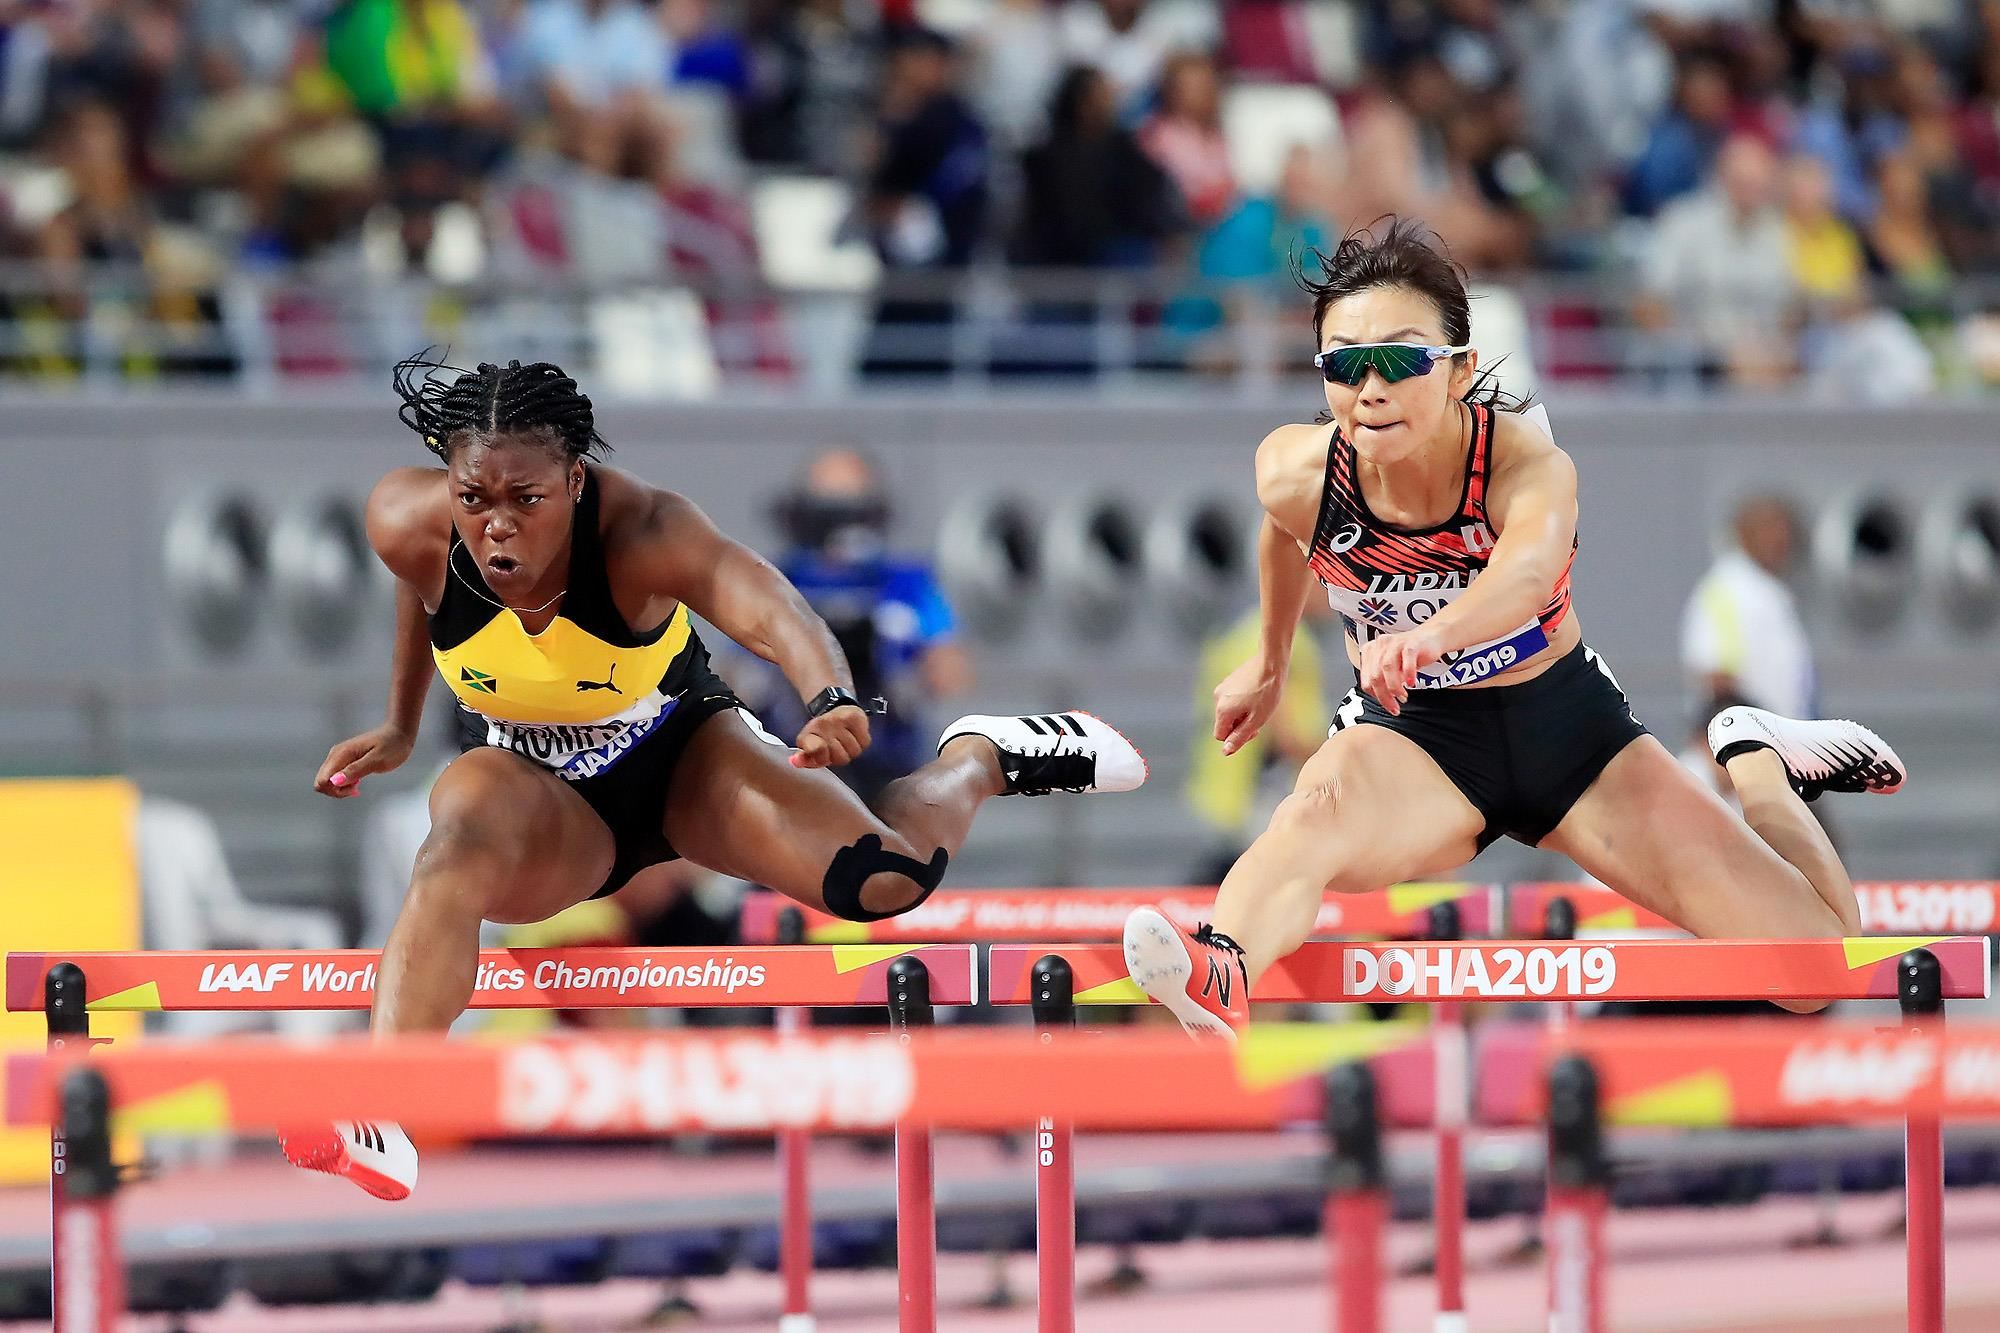 Yanique Thompson and Ayako Kimura in the 100m hurdles (Getty Images)